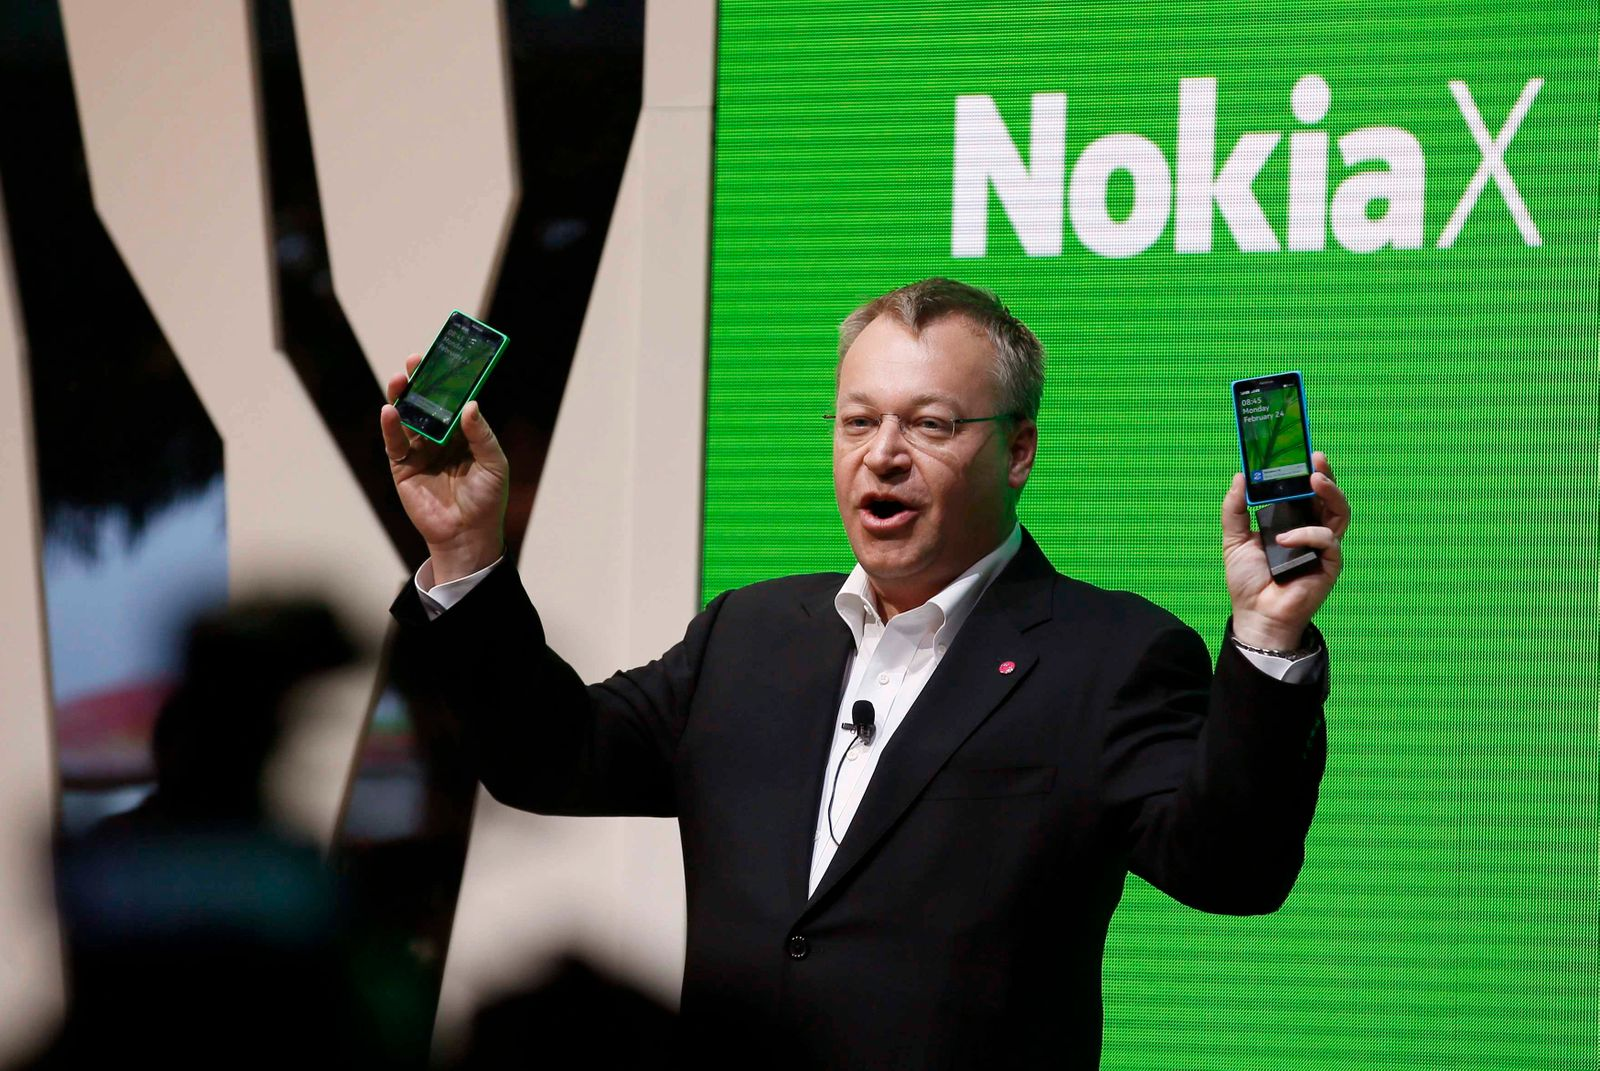 MOBILE-WORLD/NOKIA-ANDROID